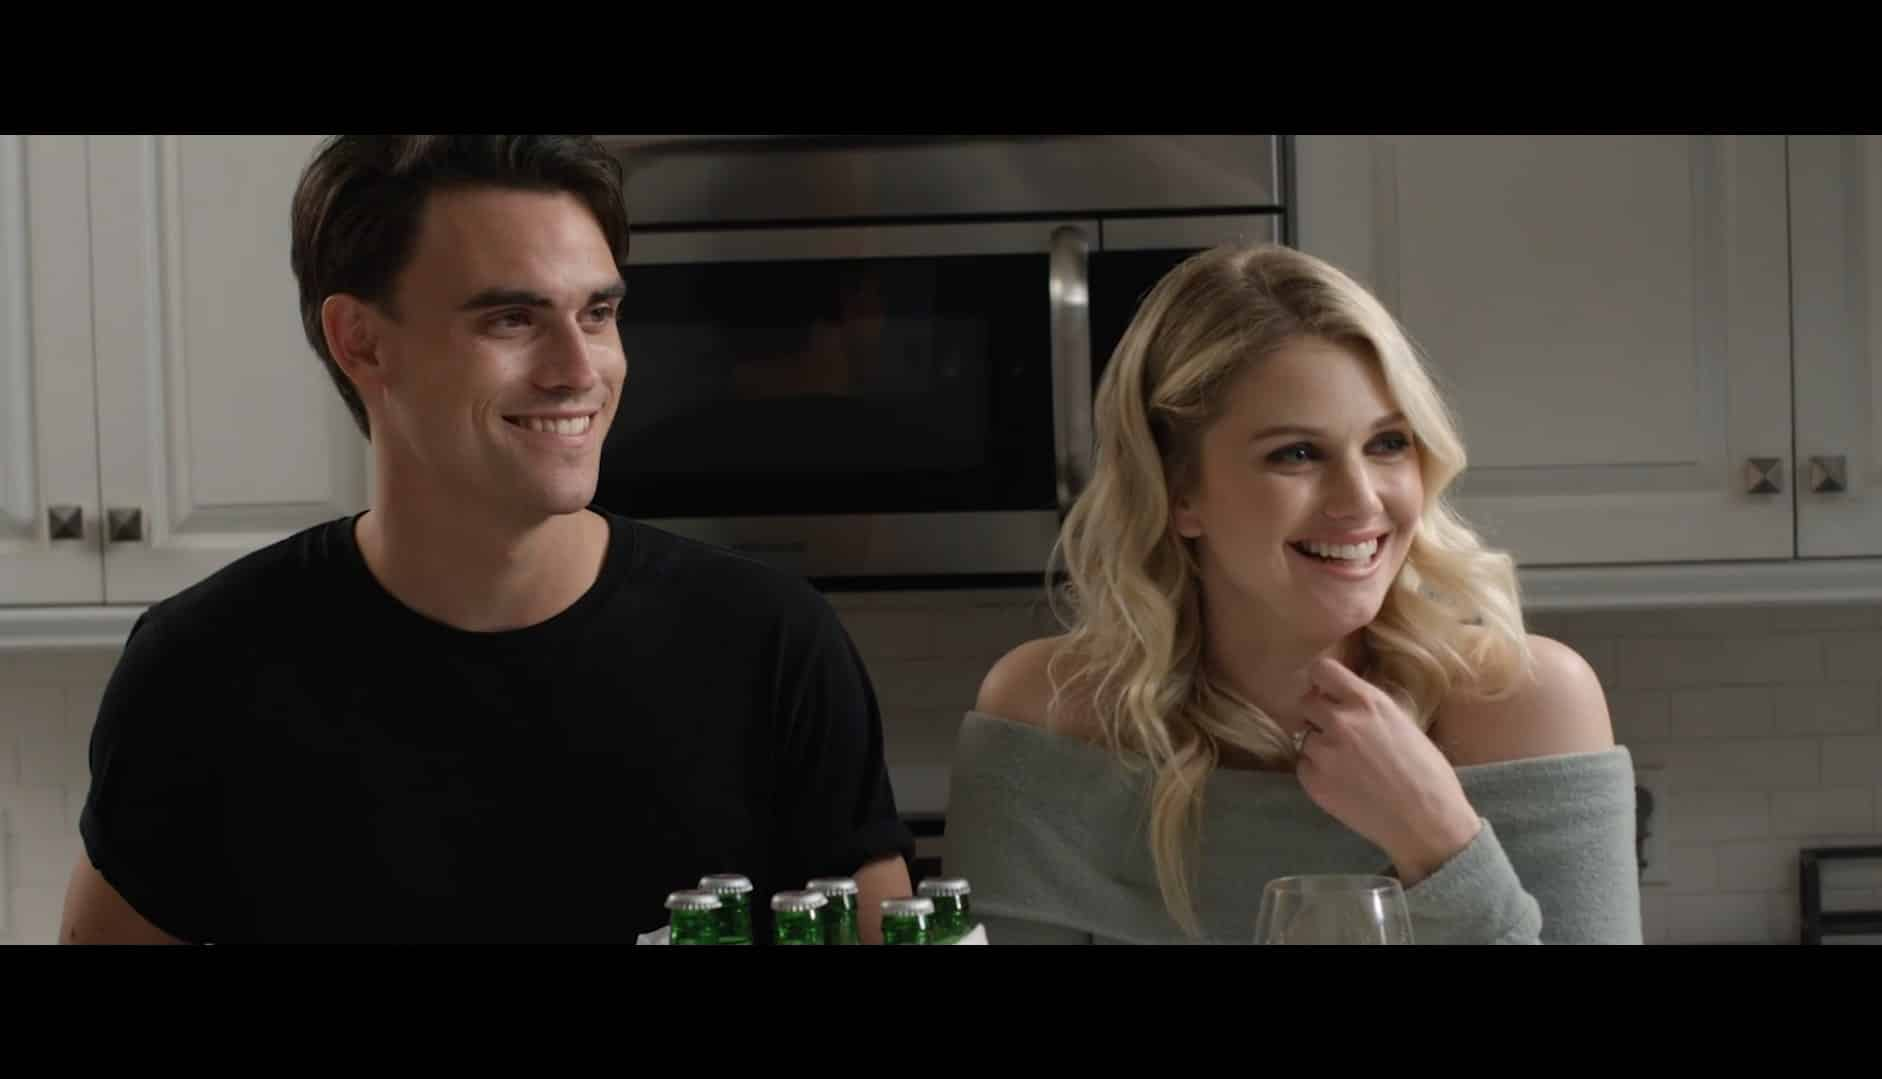 Zachary (Jonathan D. King) and Kate (Katie Gill) laughing in the kitchen